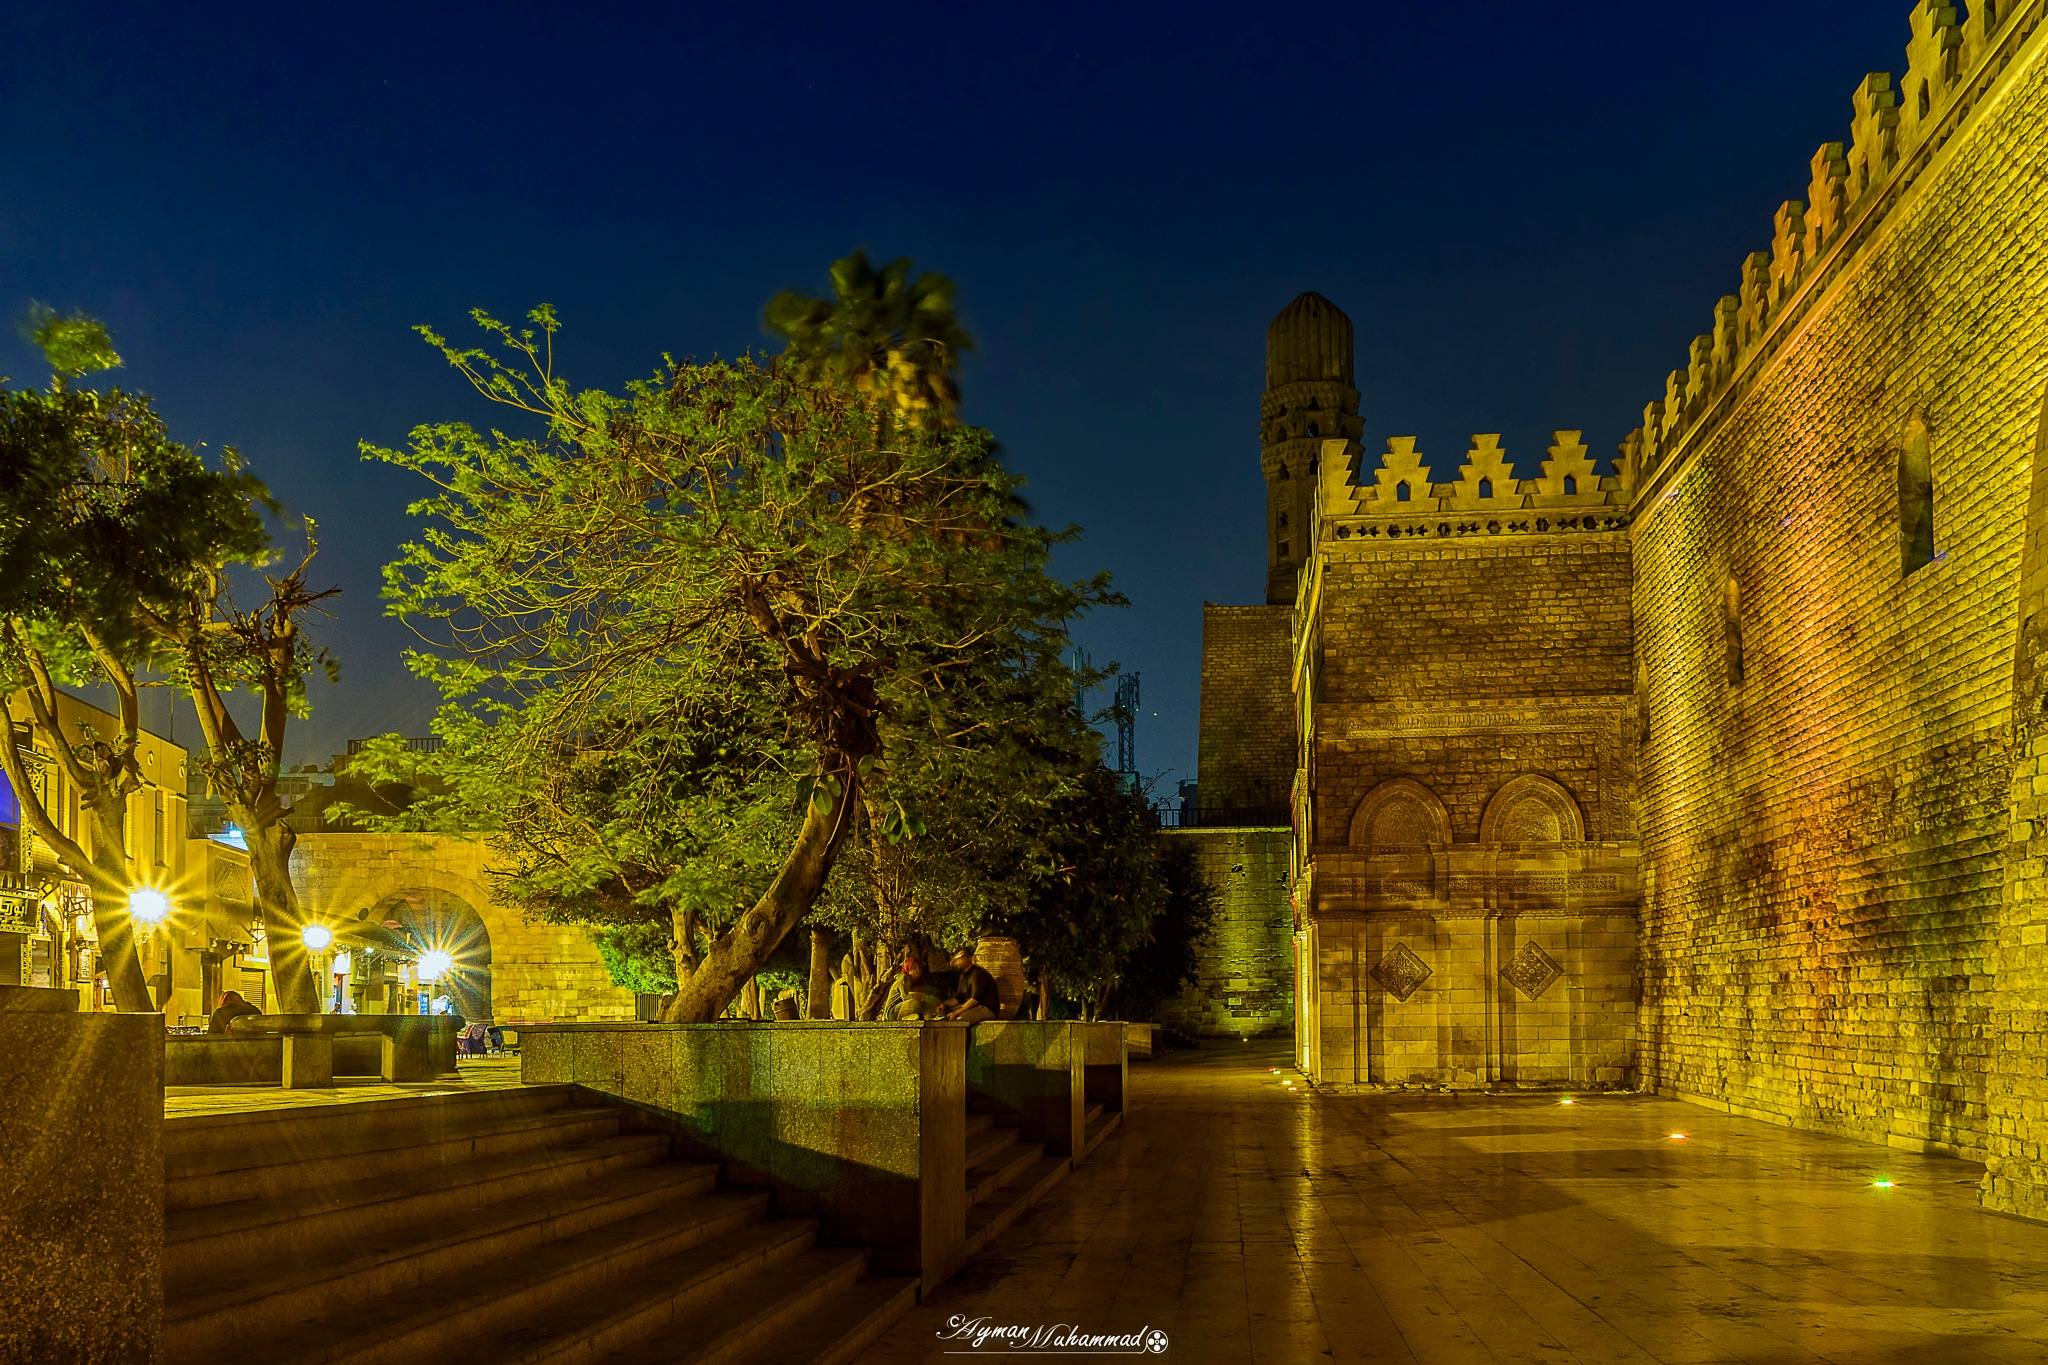 Moments beside Golden historic Mosques at night by AymanMuhammad